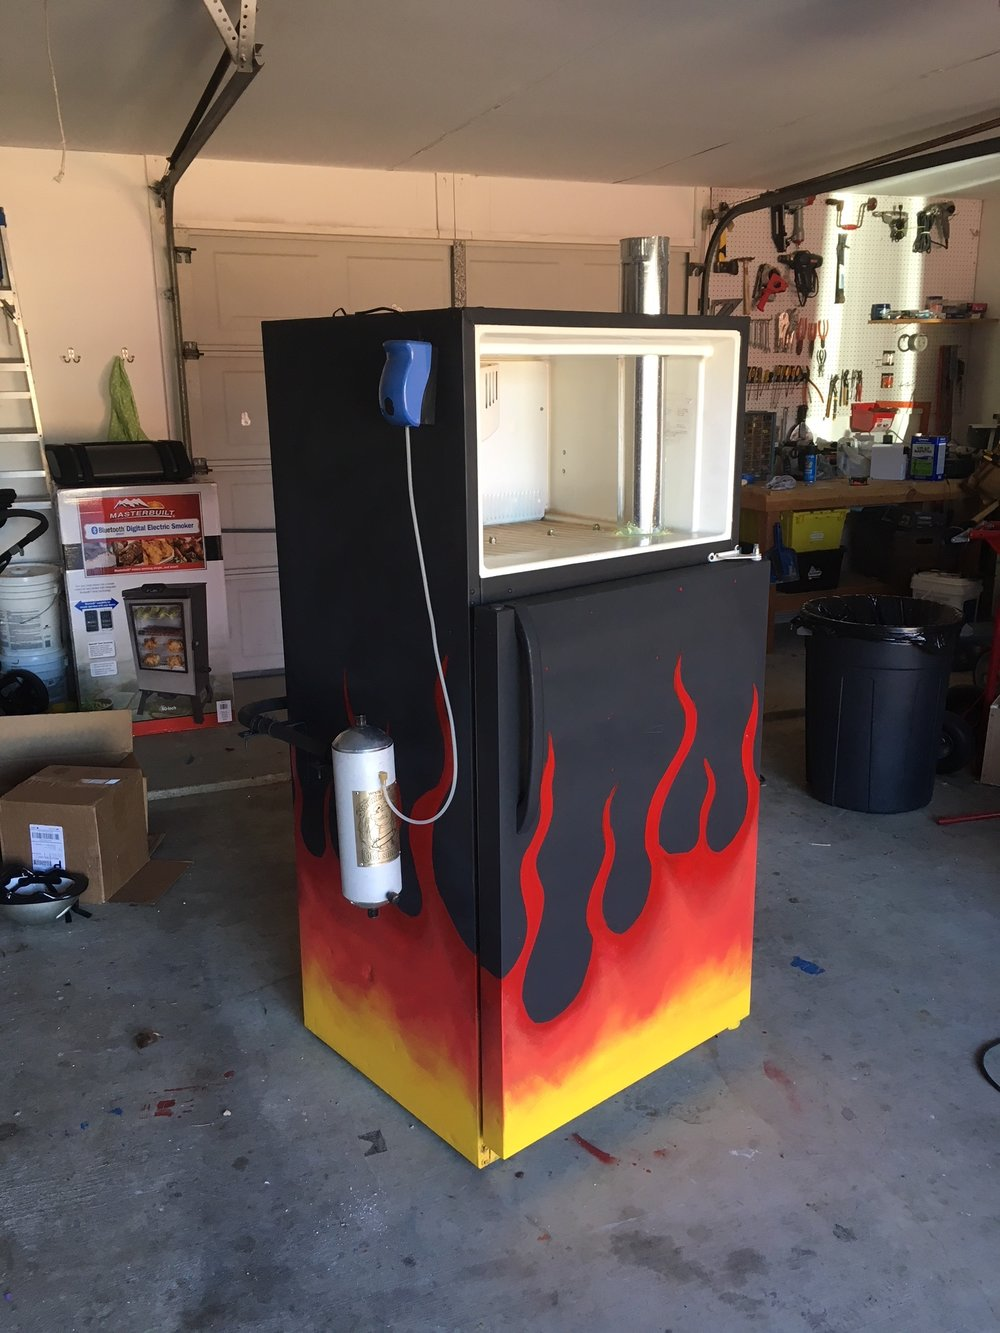 project:fridge smoker - might as well make it with a little style, right?